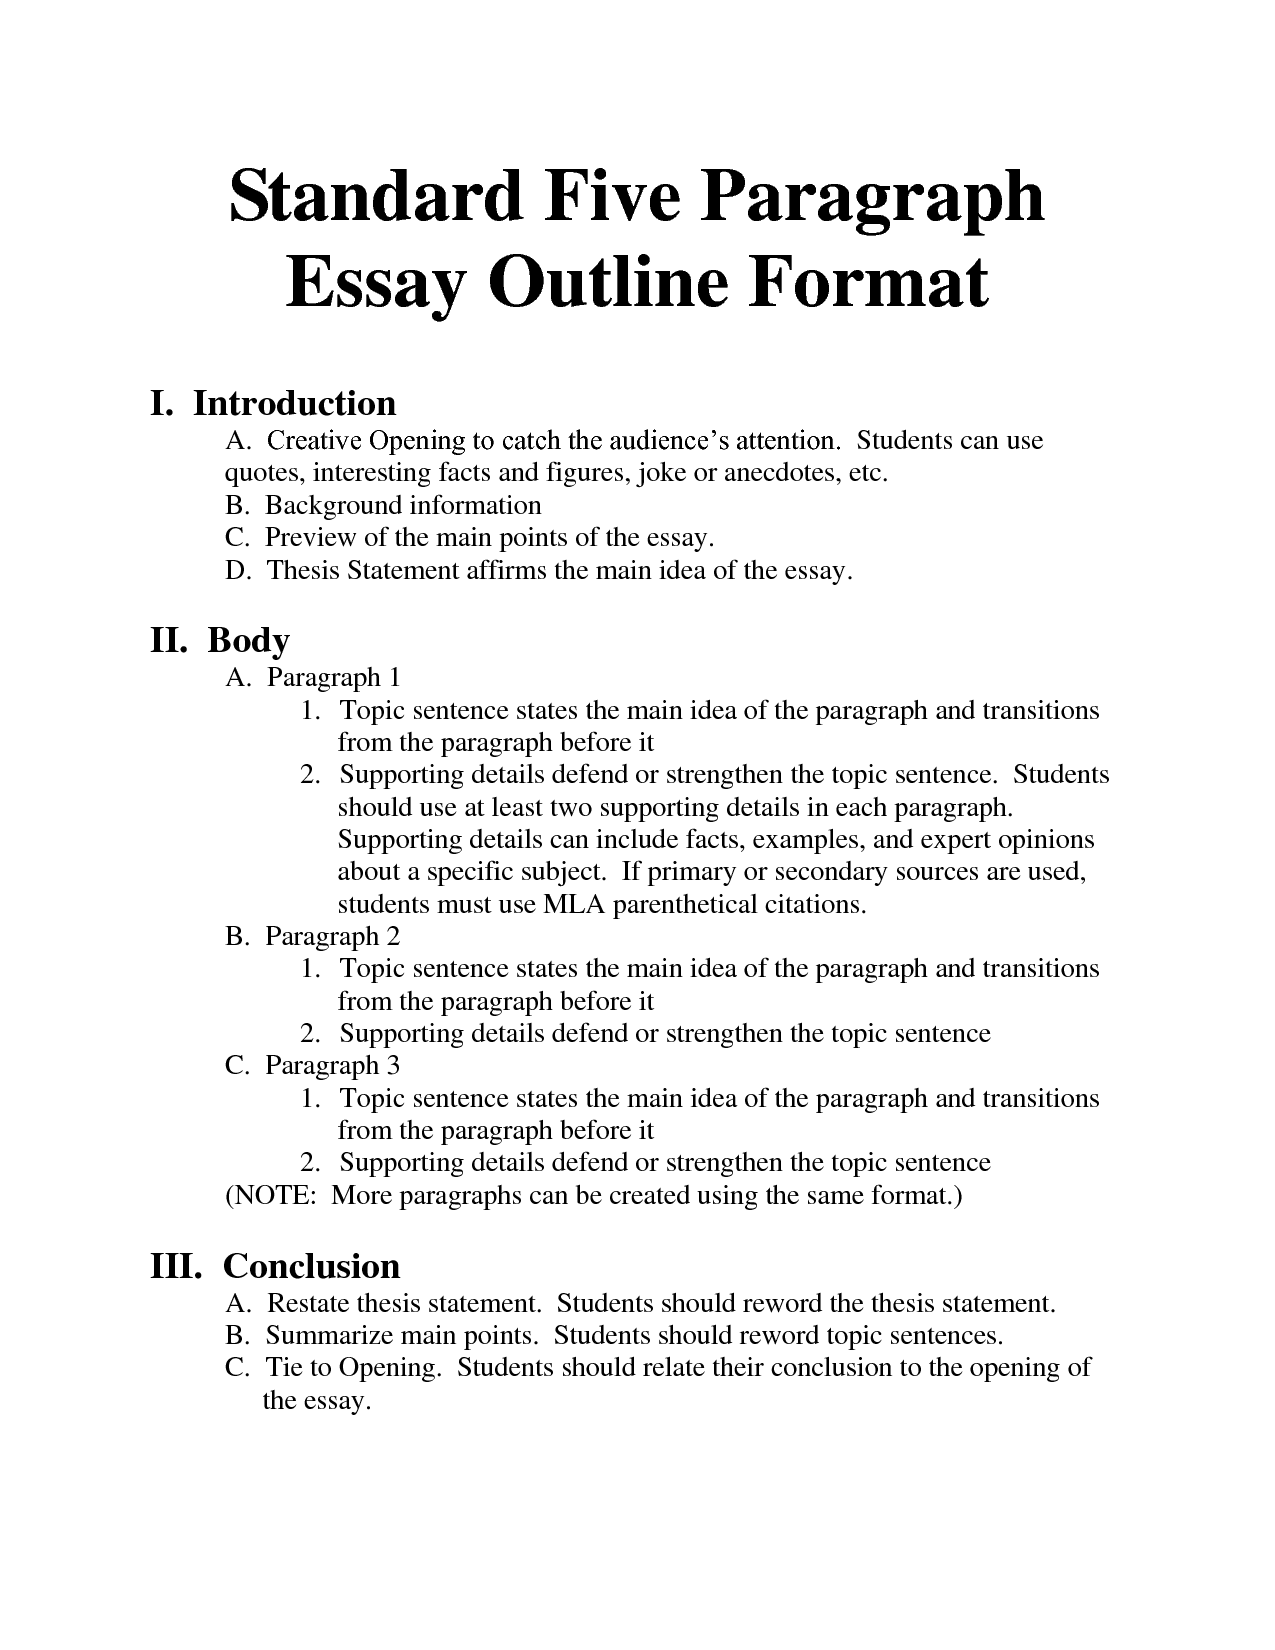 Standard Essay Format  Bing Images  Essays Homeschool